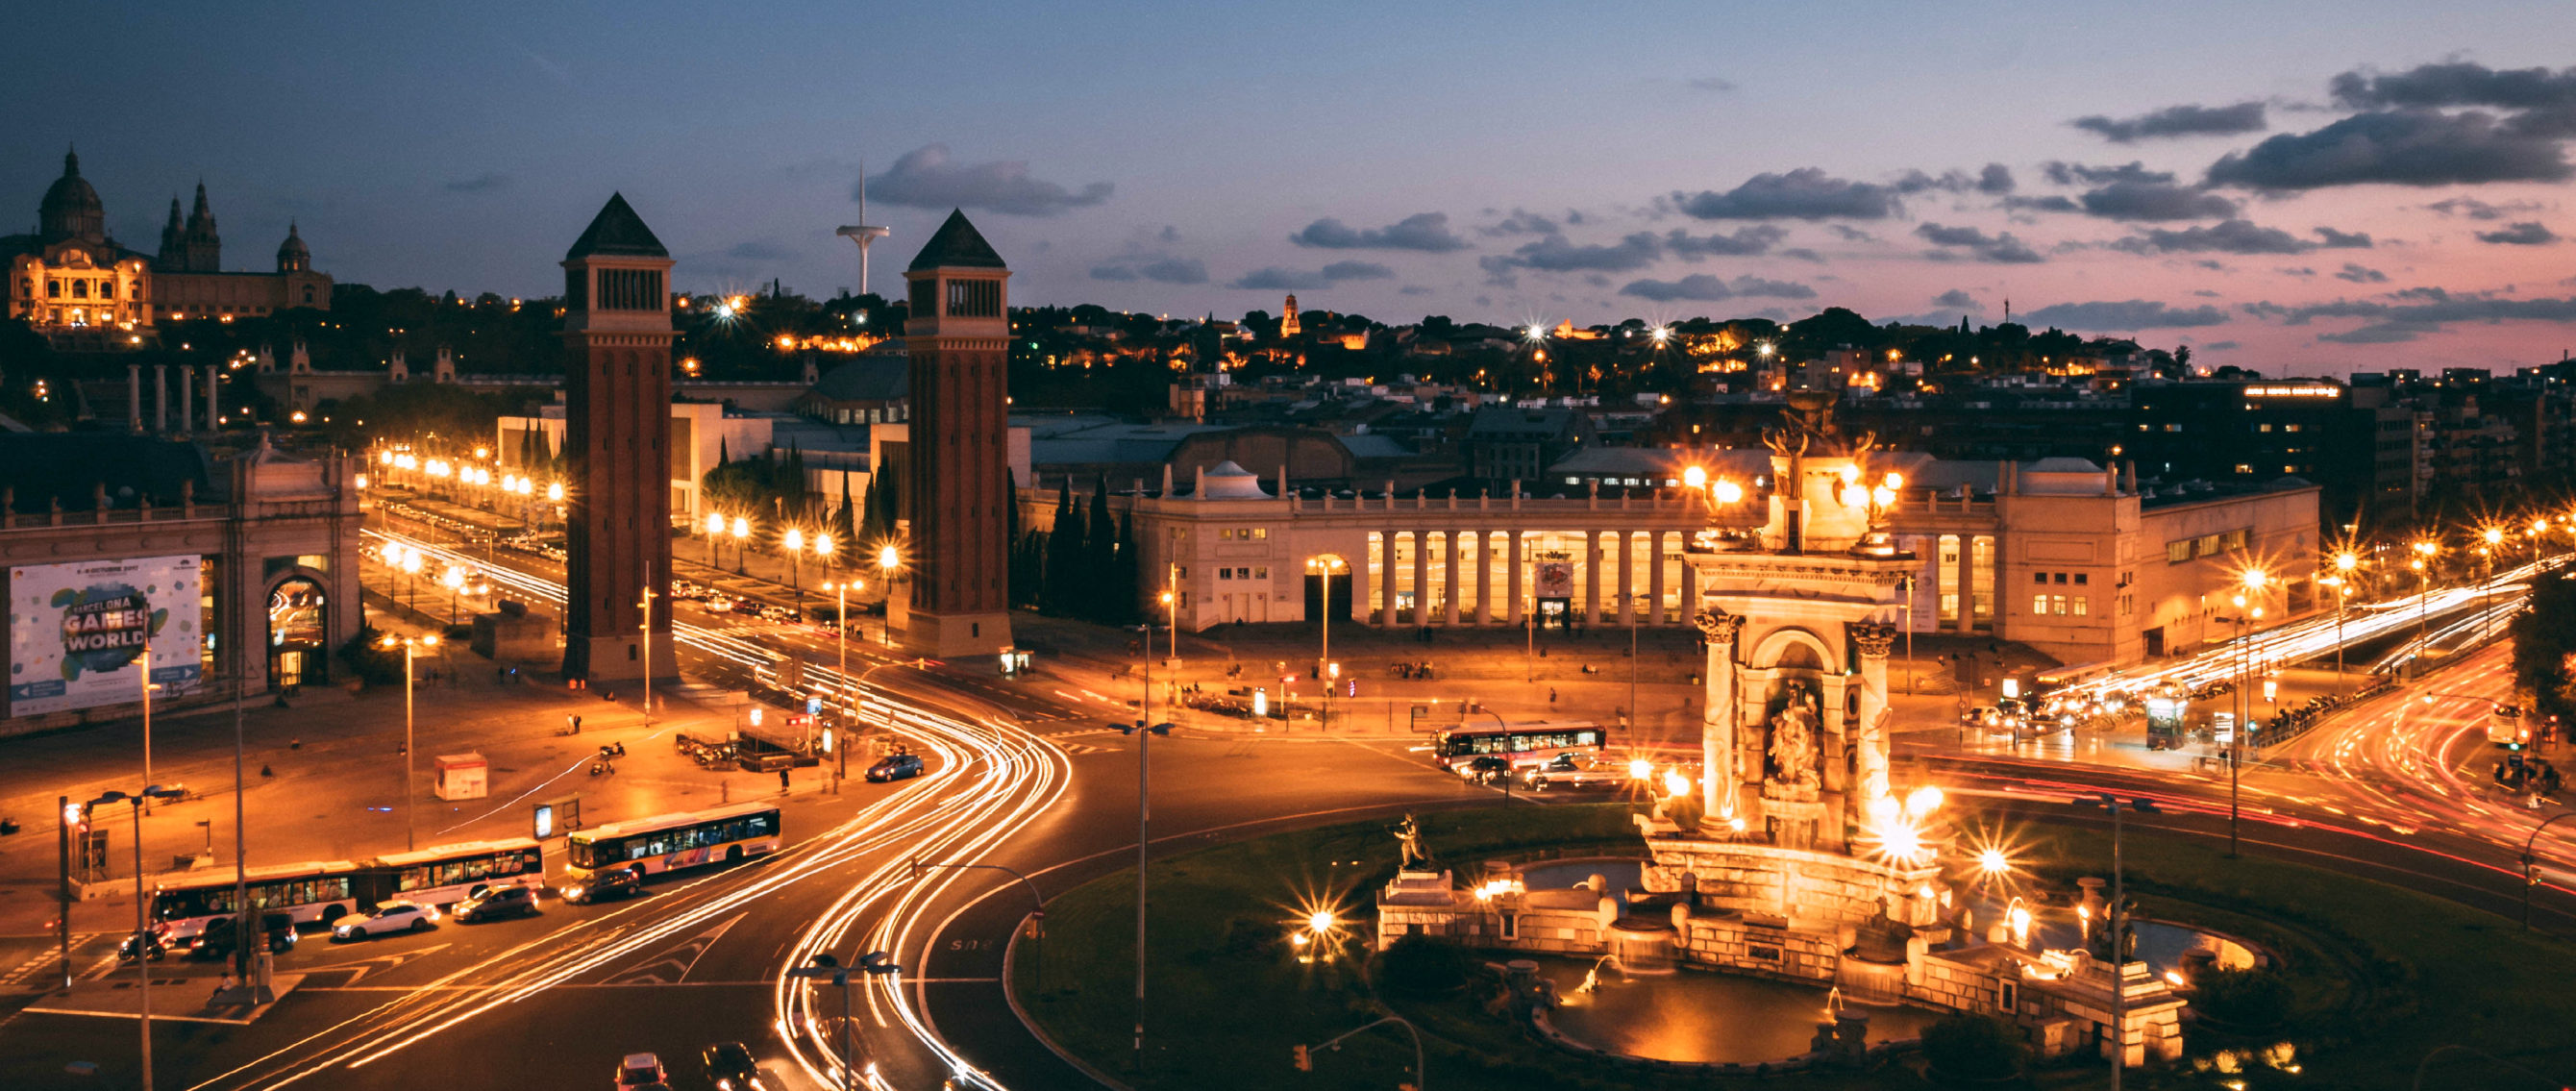 9 Unique Must-Do Things In Barcelona That Many People Miss